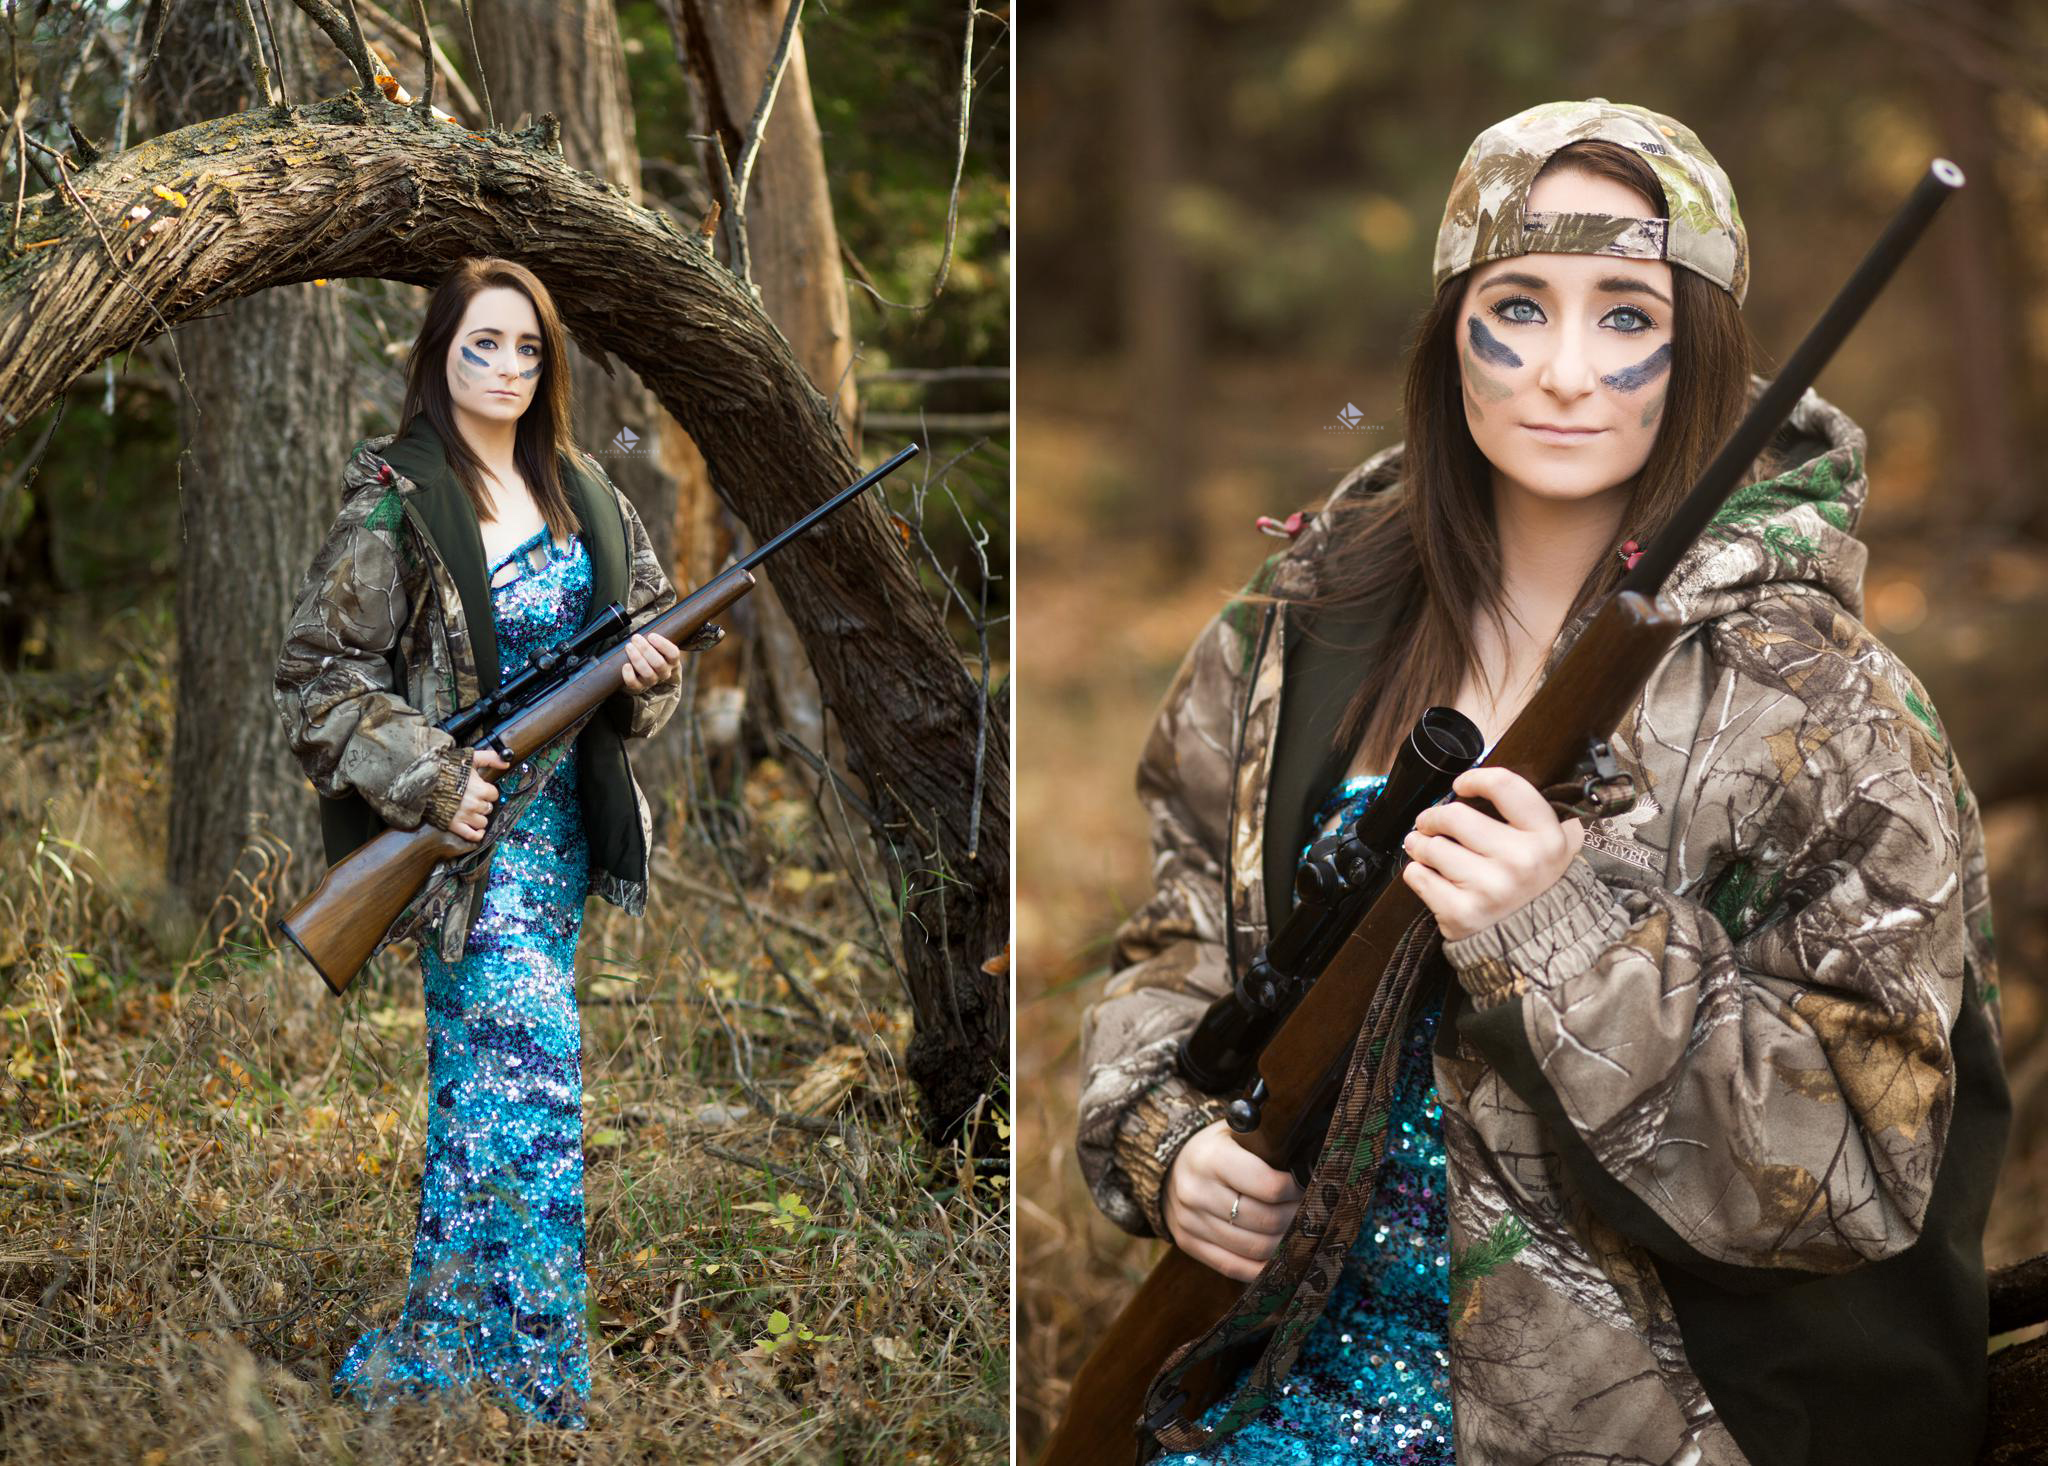 brunette senior girl in a blue sequined prom dress with a camo jacket and face paint posing with a gun in the forest.